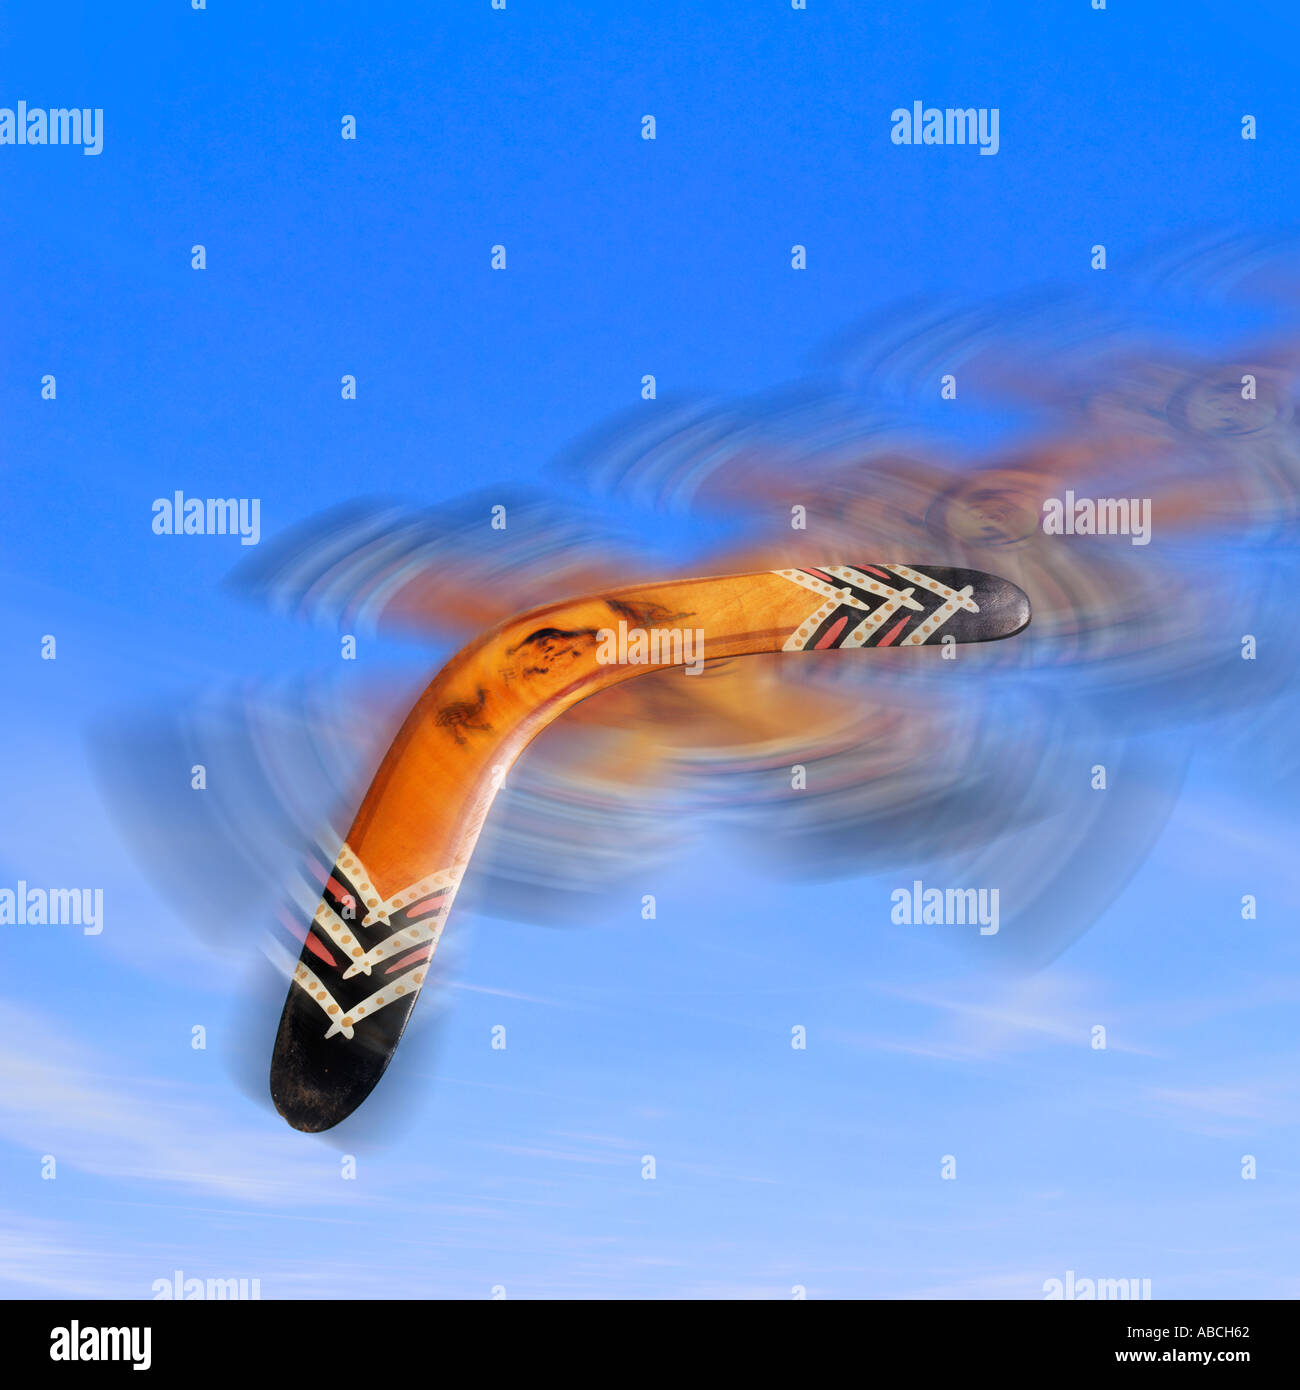 Flying boomerang - Stock Image